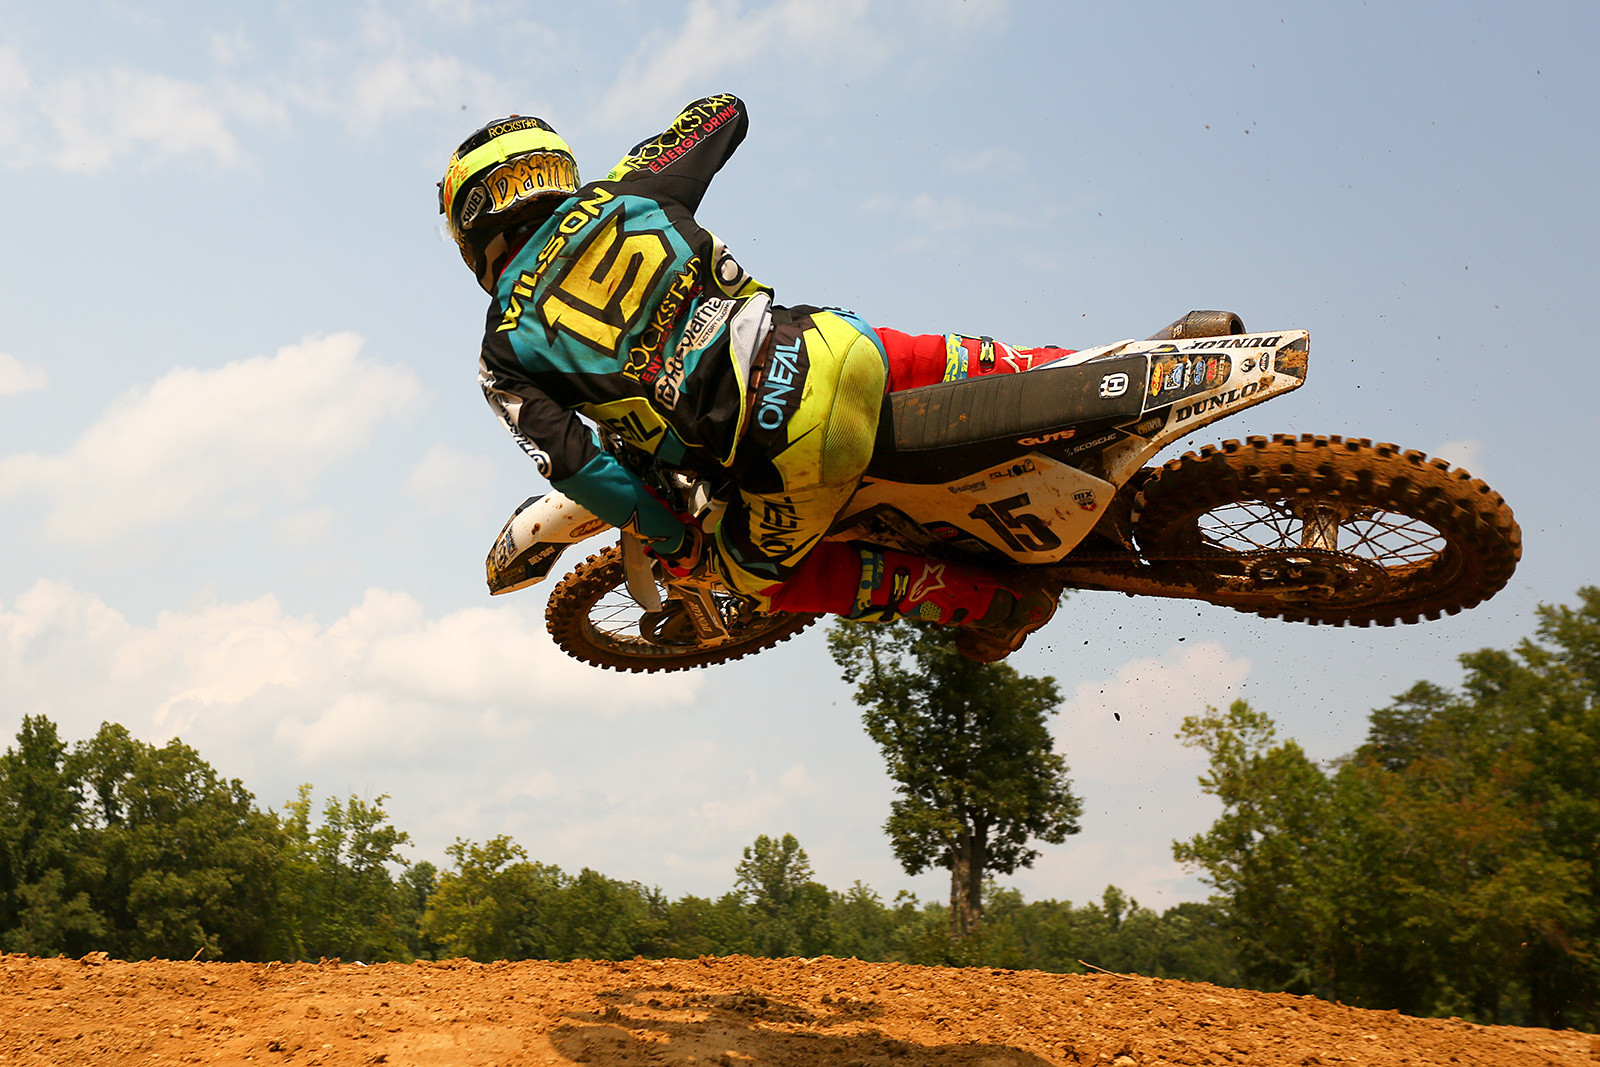 Dean Wilson got a little contorted over the top of Henry Hill, too.